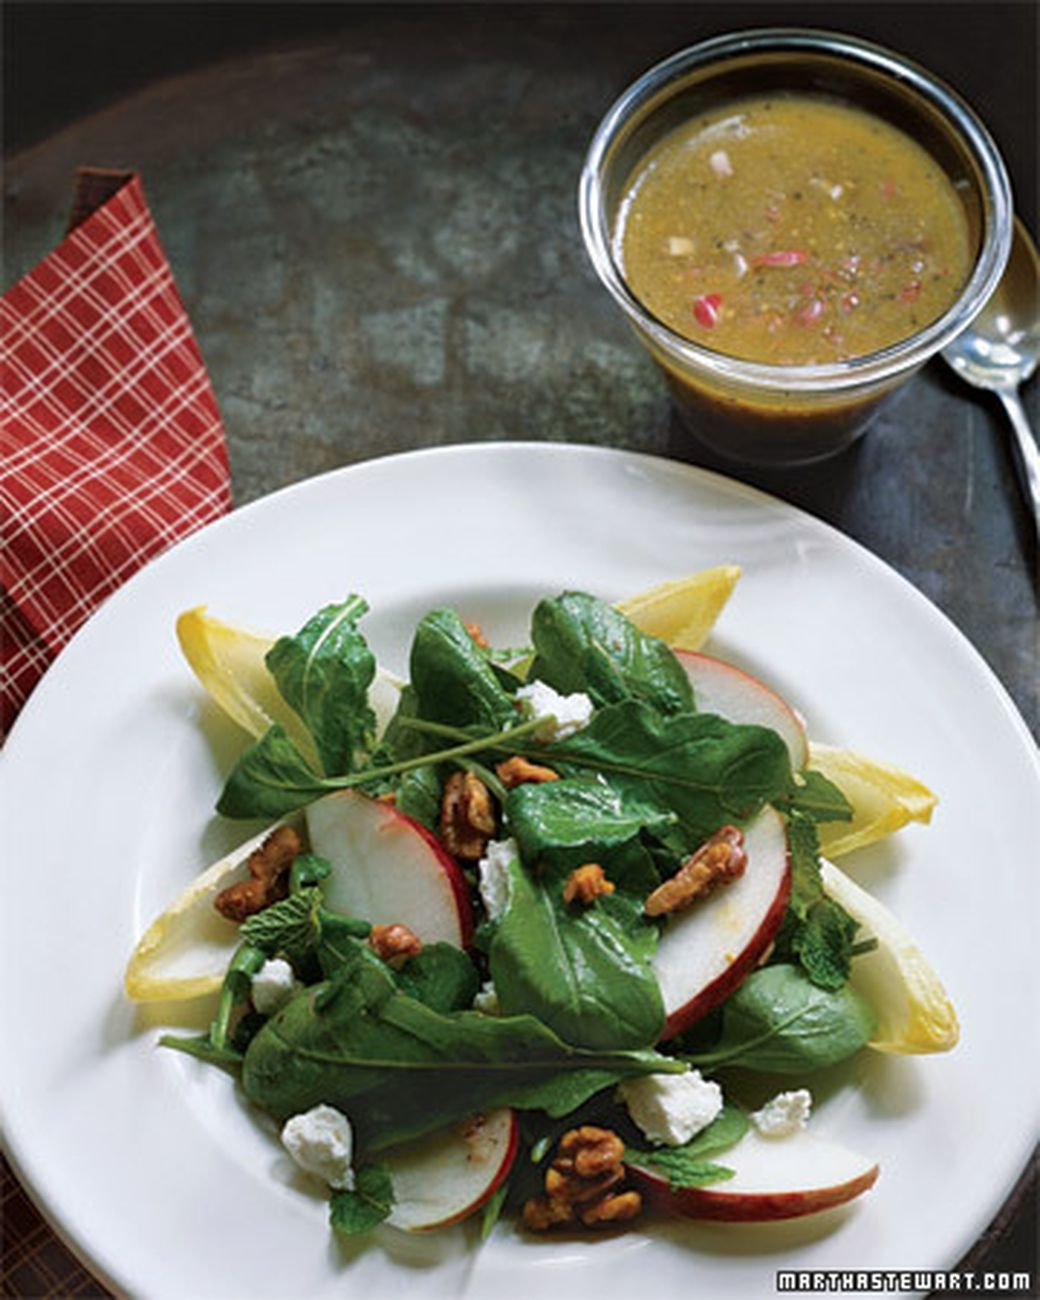 This salad pairs bitter endive and arugula with apples and walnuts in a honey-mustard dressing. Don't forget the goat cheese.